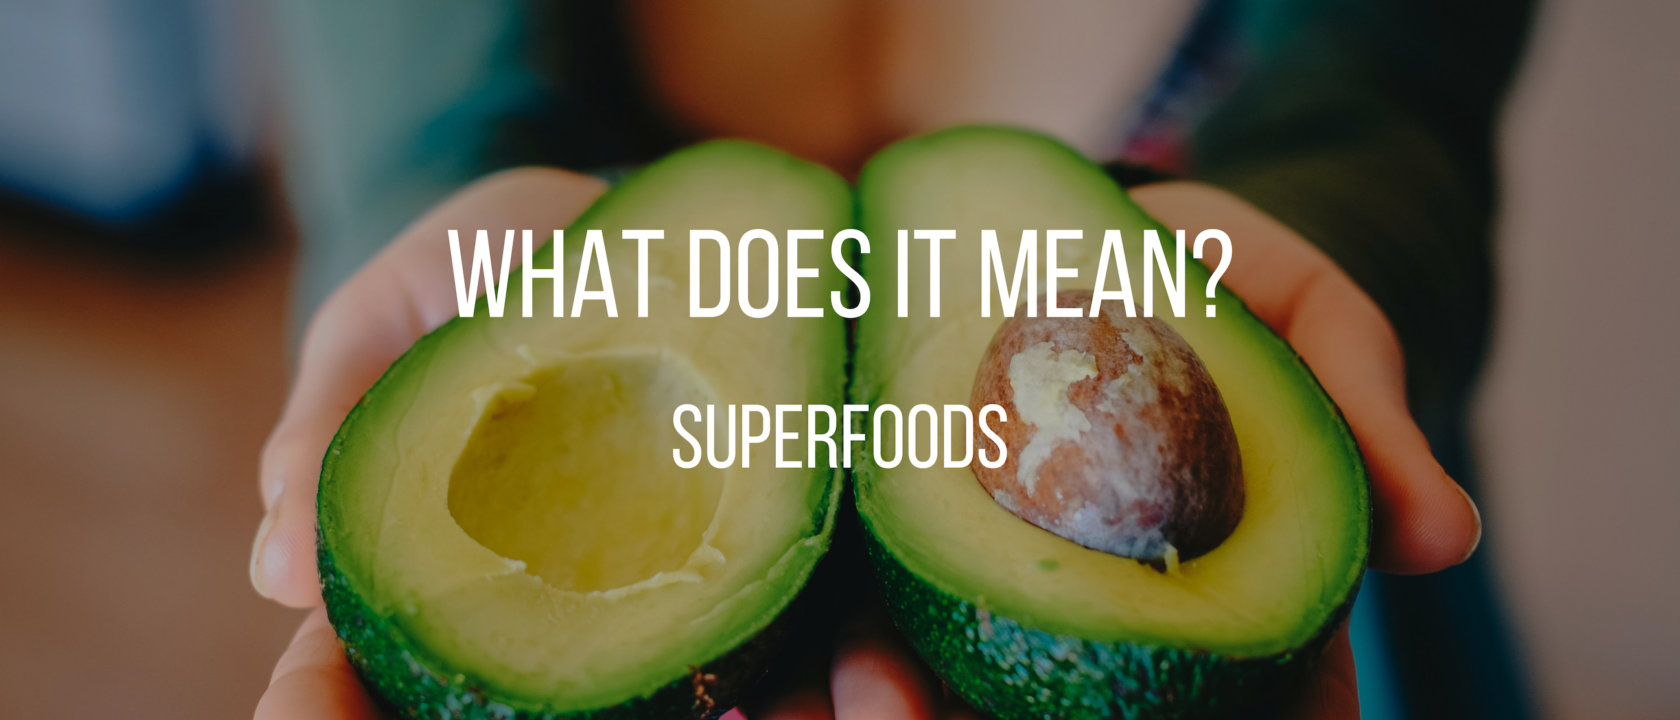 What Does it Mean? Superfoods